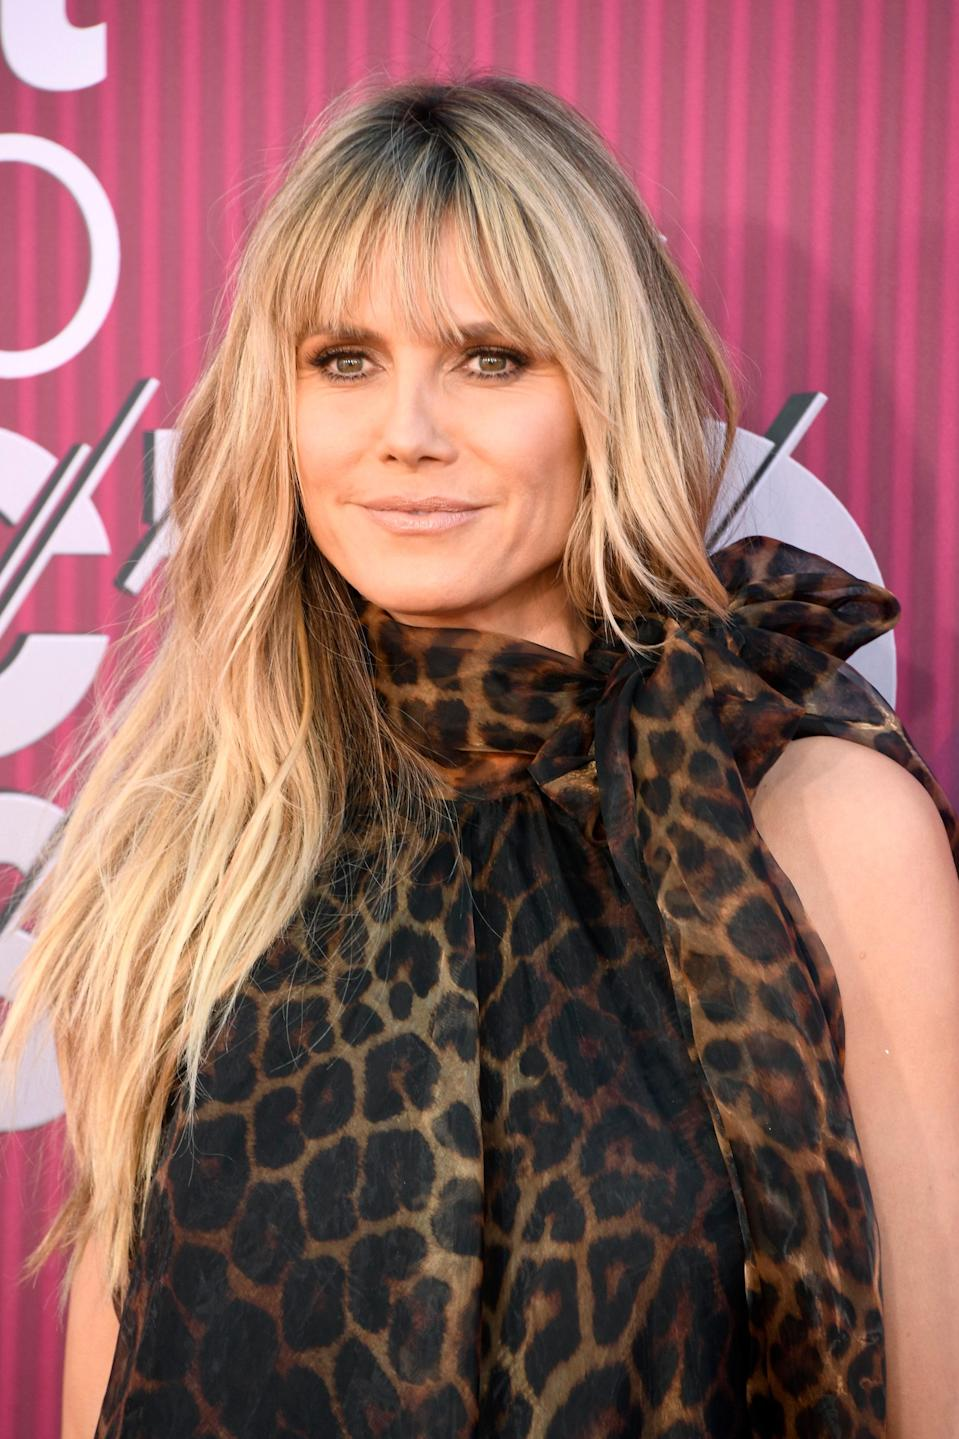 """""""If you have a square jawline, a long, layered fringe can help to soften and balance your features,"""" says Reyman. (They can also help thin hair look fuller.) If you're not into the straight-across look, he notes you can also opt for '70s-inspired <a href=""""https://www.glamour.com/story/curtain-bangs?mbid=synd_yahoo_rss"""" rel=""""nofollow noopener"""" target=""""_blank"""" data-ylk=""""slk:curtain bangs"""" class=""""link rapid-noclick-resp"""">curtain bangs</a>, which are a little more effortless to style."""